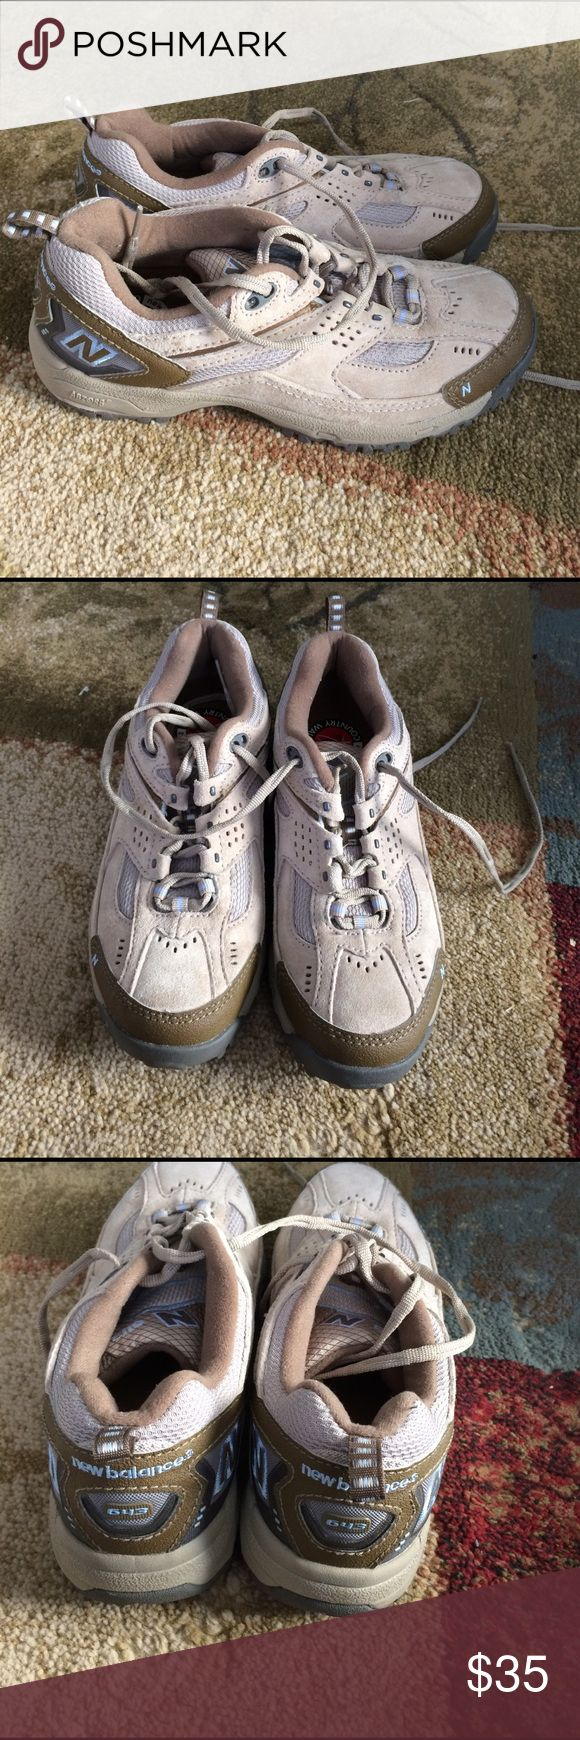 New Balance 643 Walking shoes size 8.5 New Balance 643 Walking shoes size 8.5. In great condition. Only wore a couple of times. Brown and light blue in color. Comes from smoke free and pet free home. New Balance Shoes Athletic Shoes